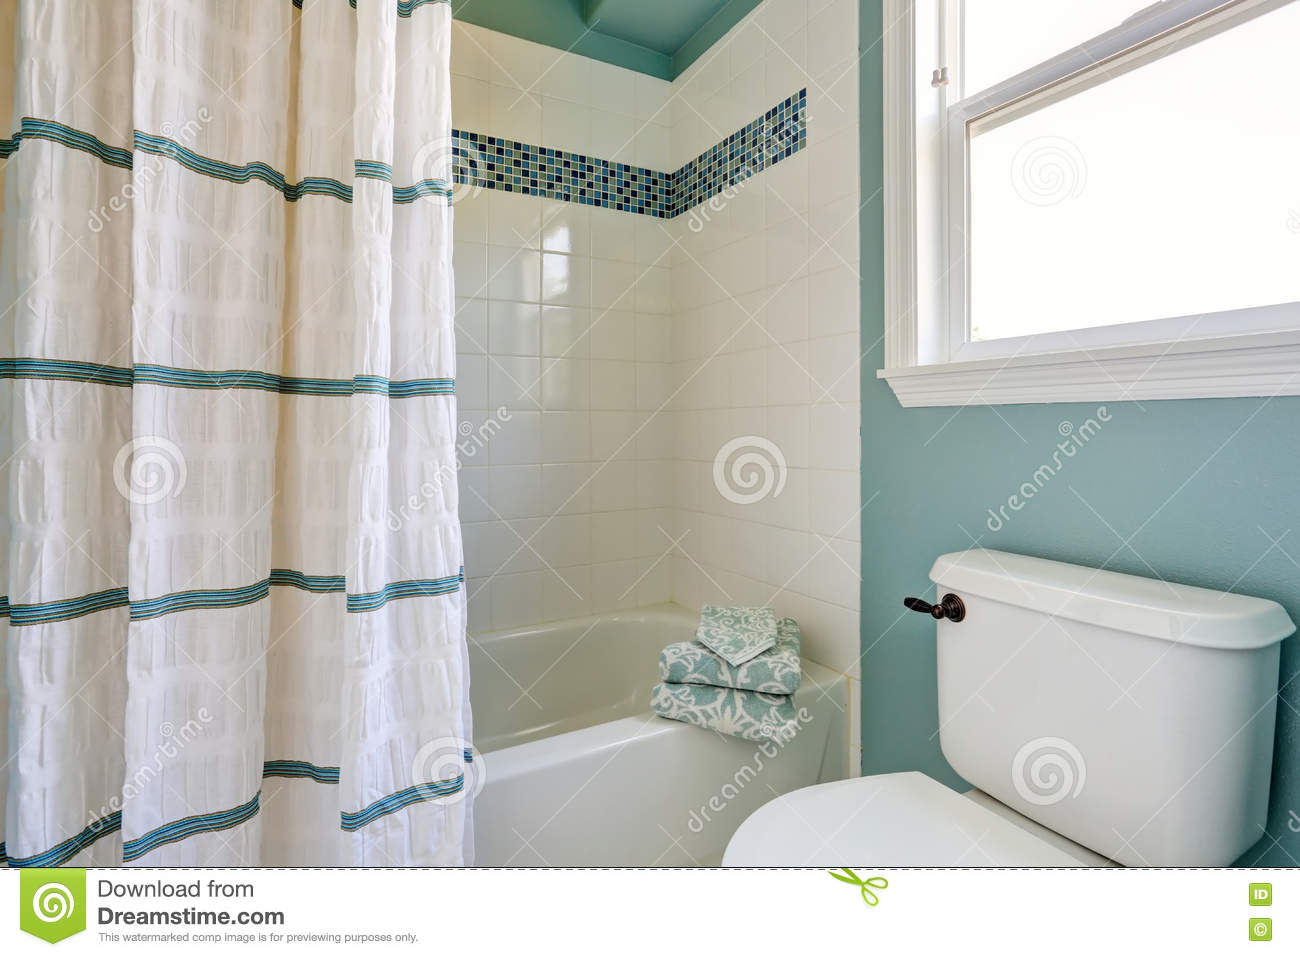 White And Blue Bathroom Interior With Mosaic Tile Trim Stock Image ...